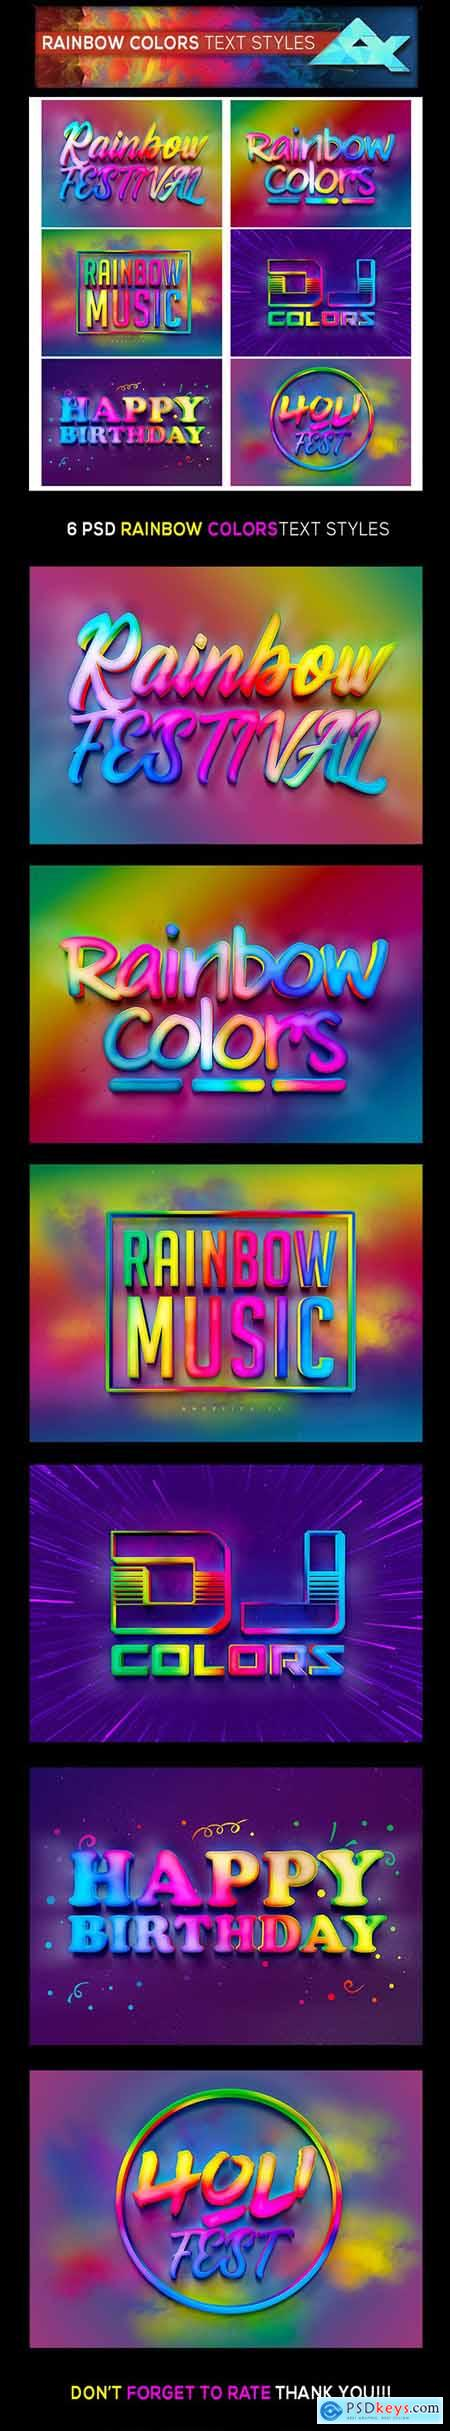 Rainbow Colors Photoshop Text Effects Styles 26378765